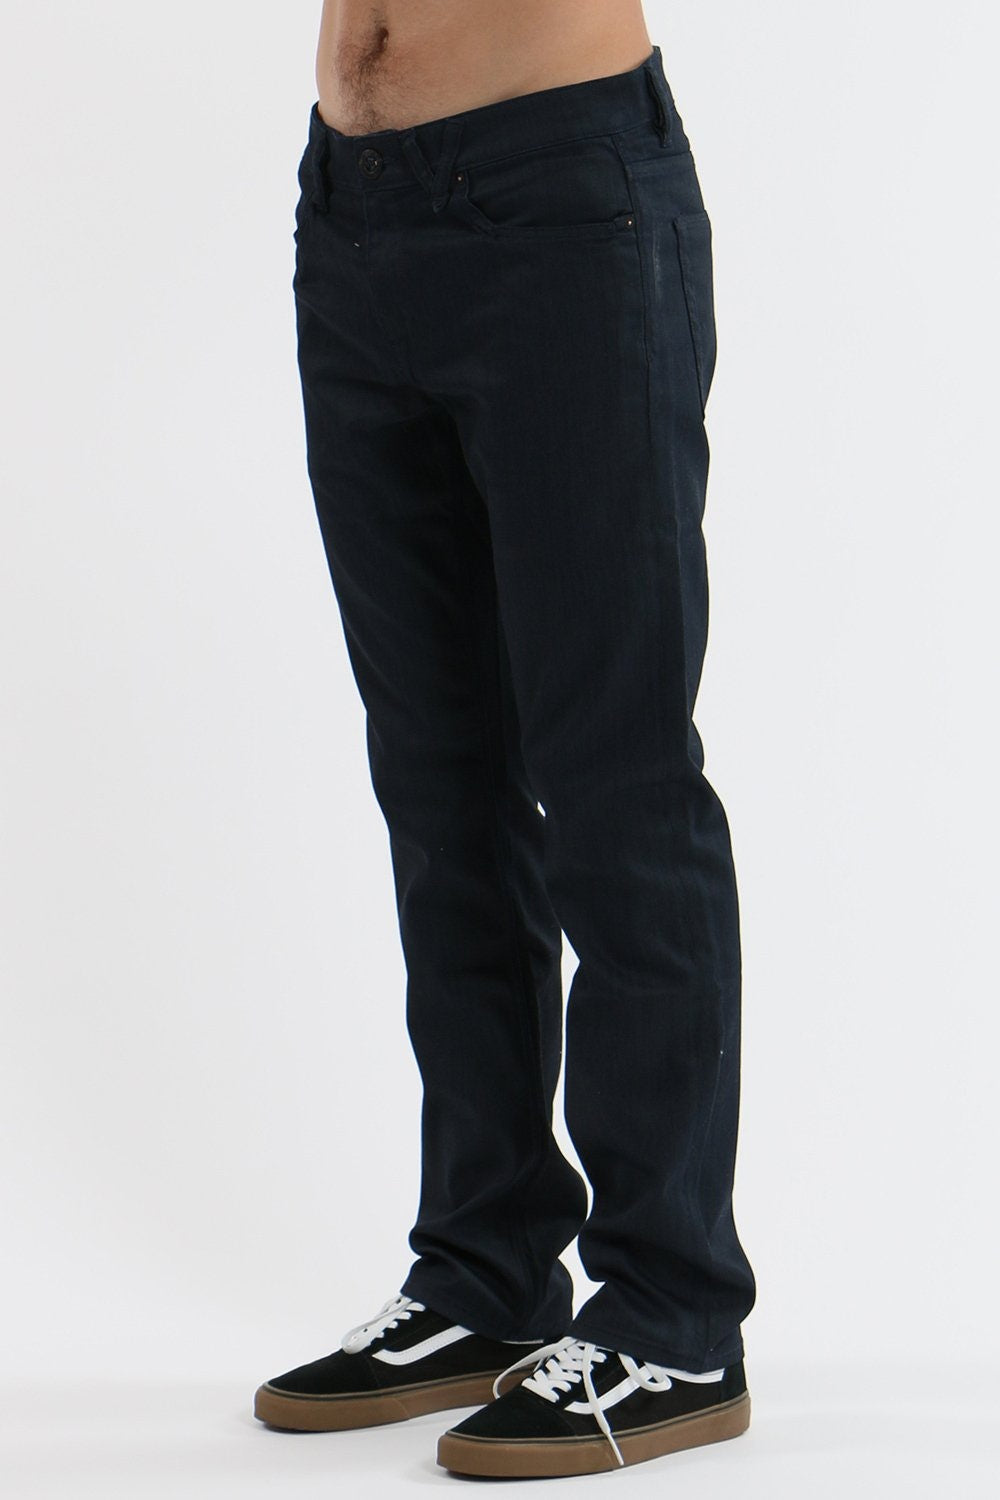 Solver Denim Jean Indigo Wash